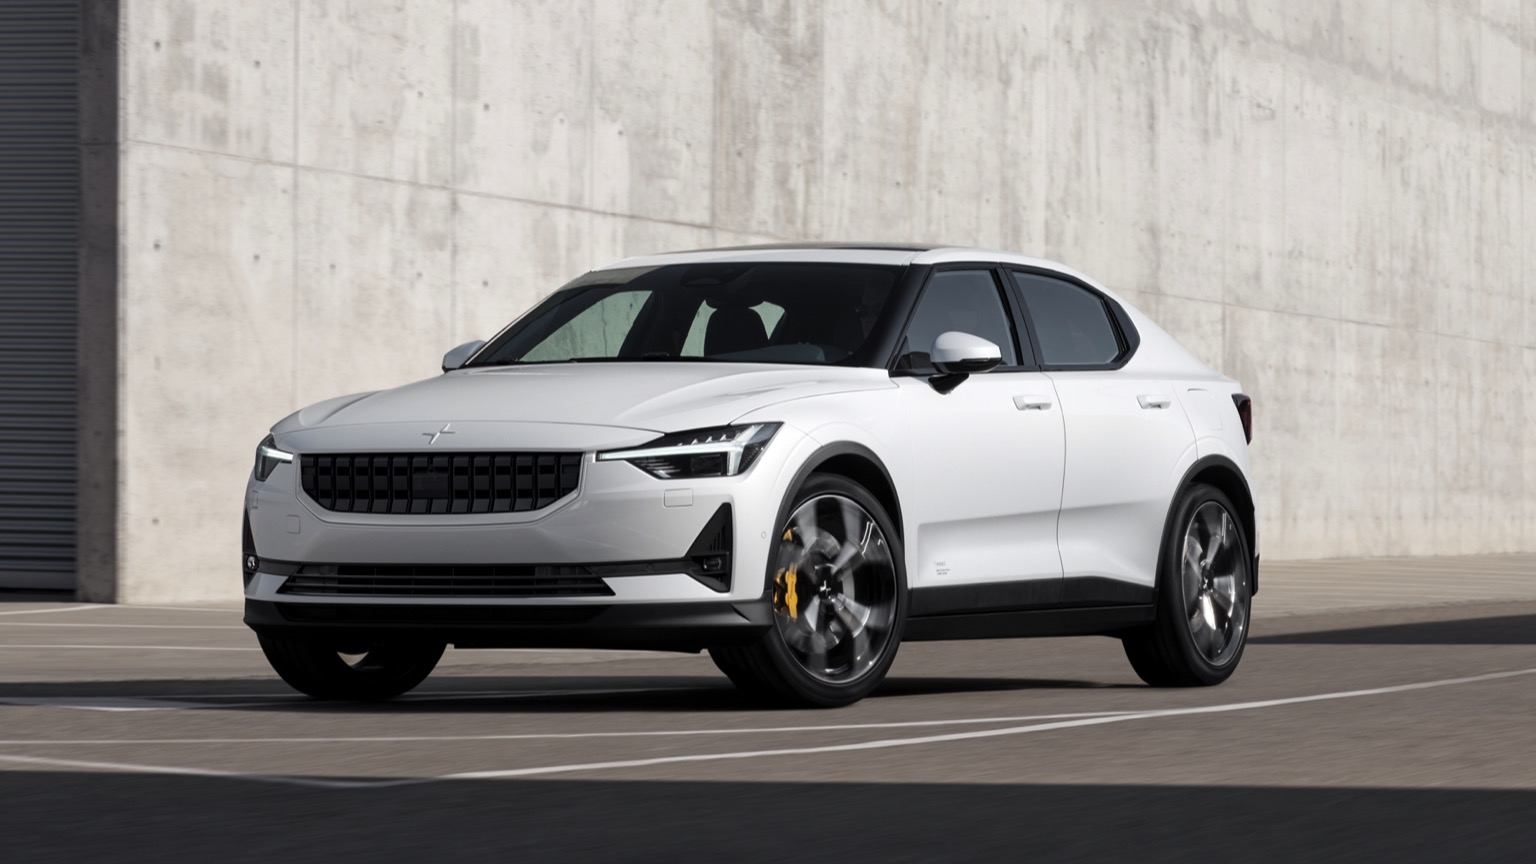 Estimate Lease Payment >> Polestar 2 price and specifications - EV Database